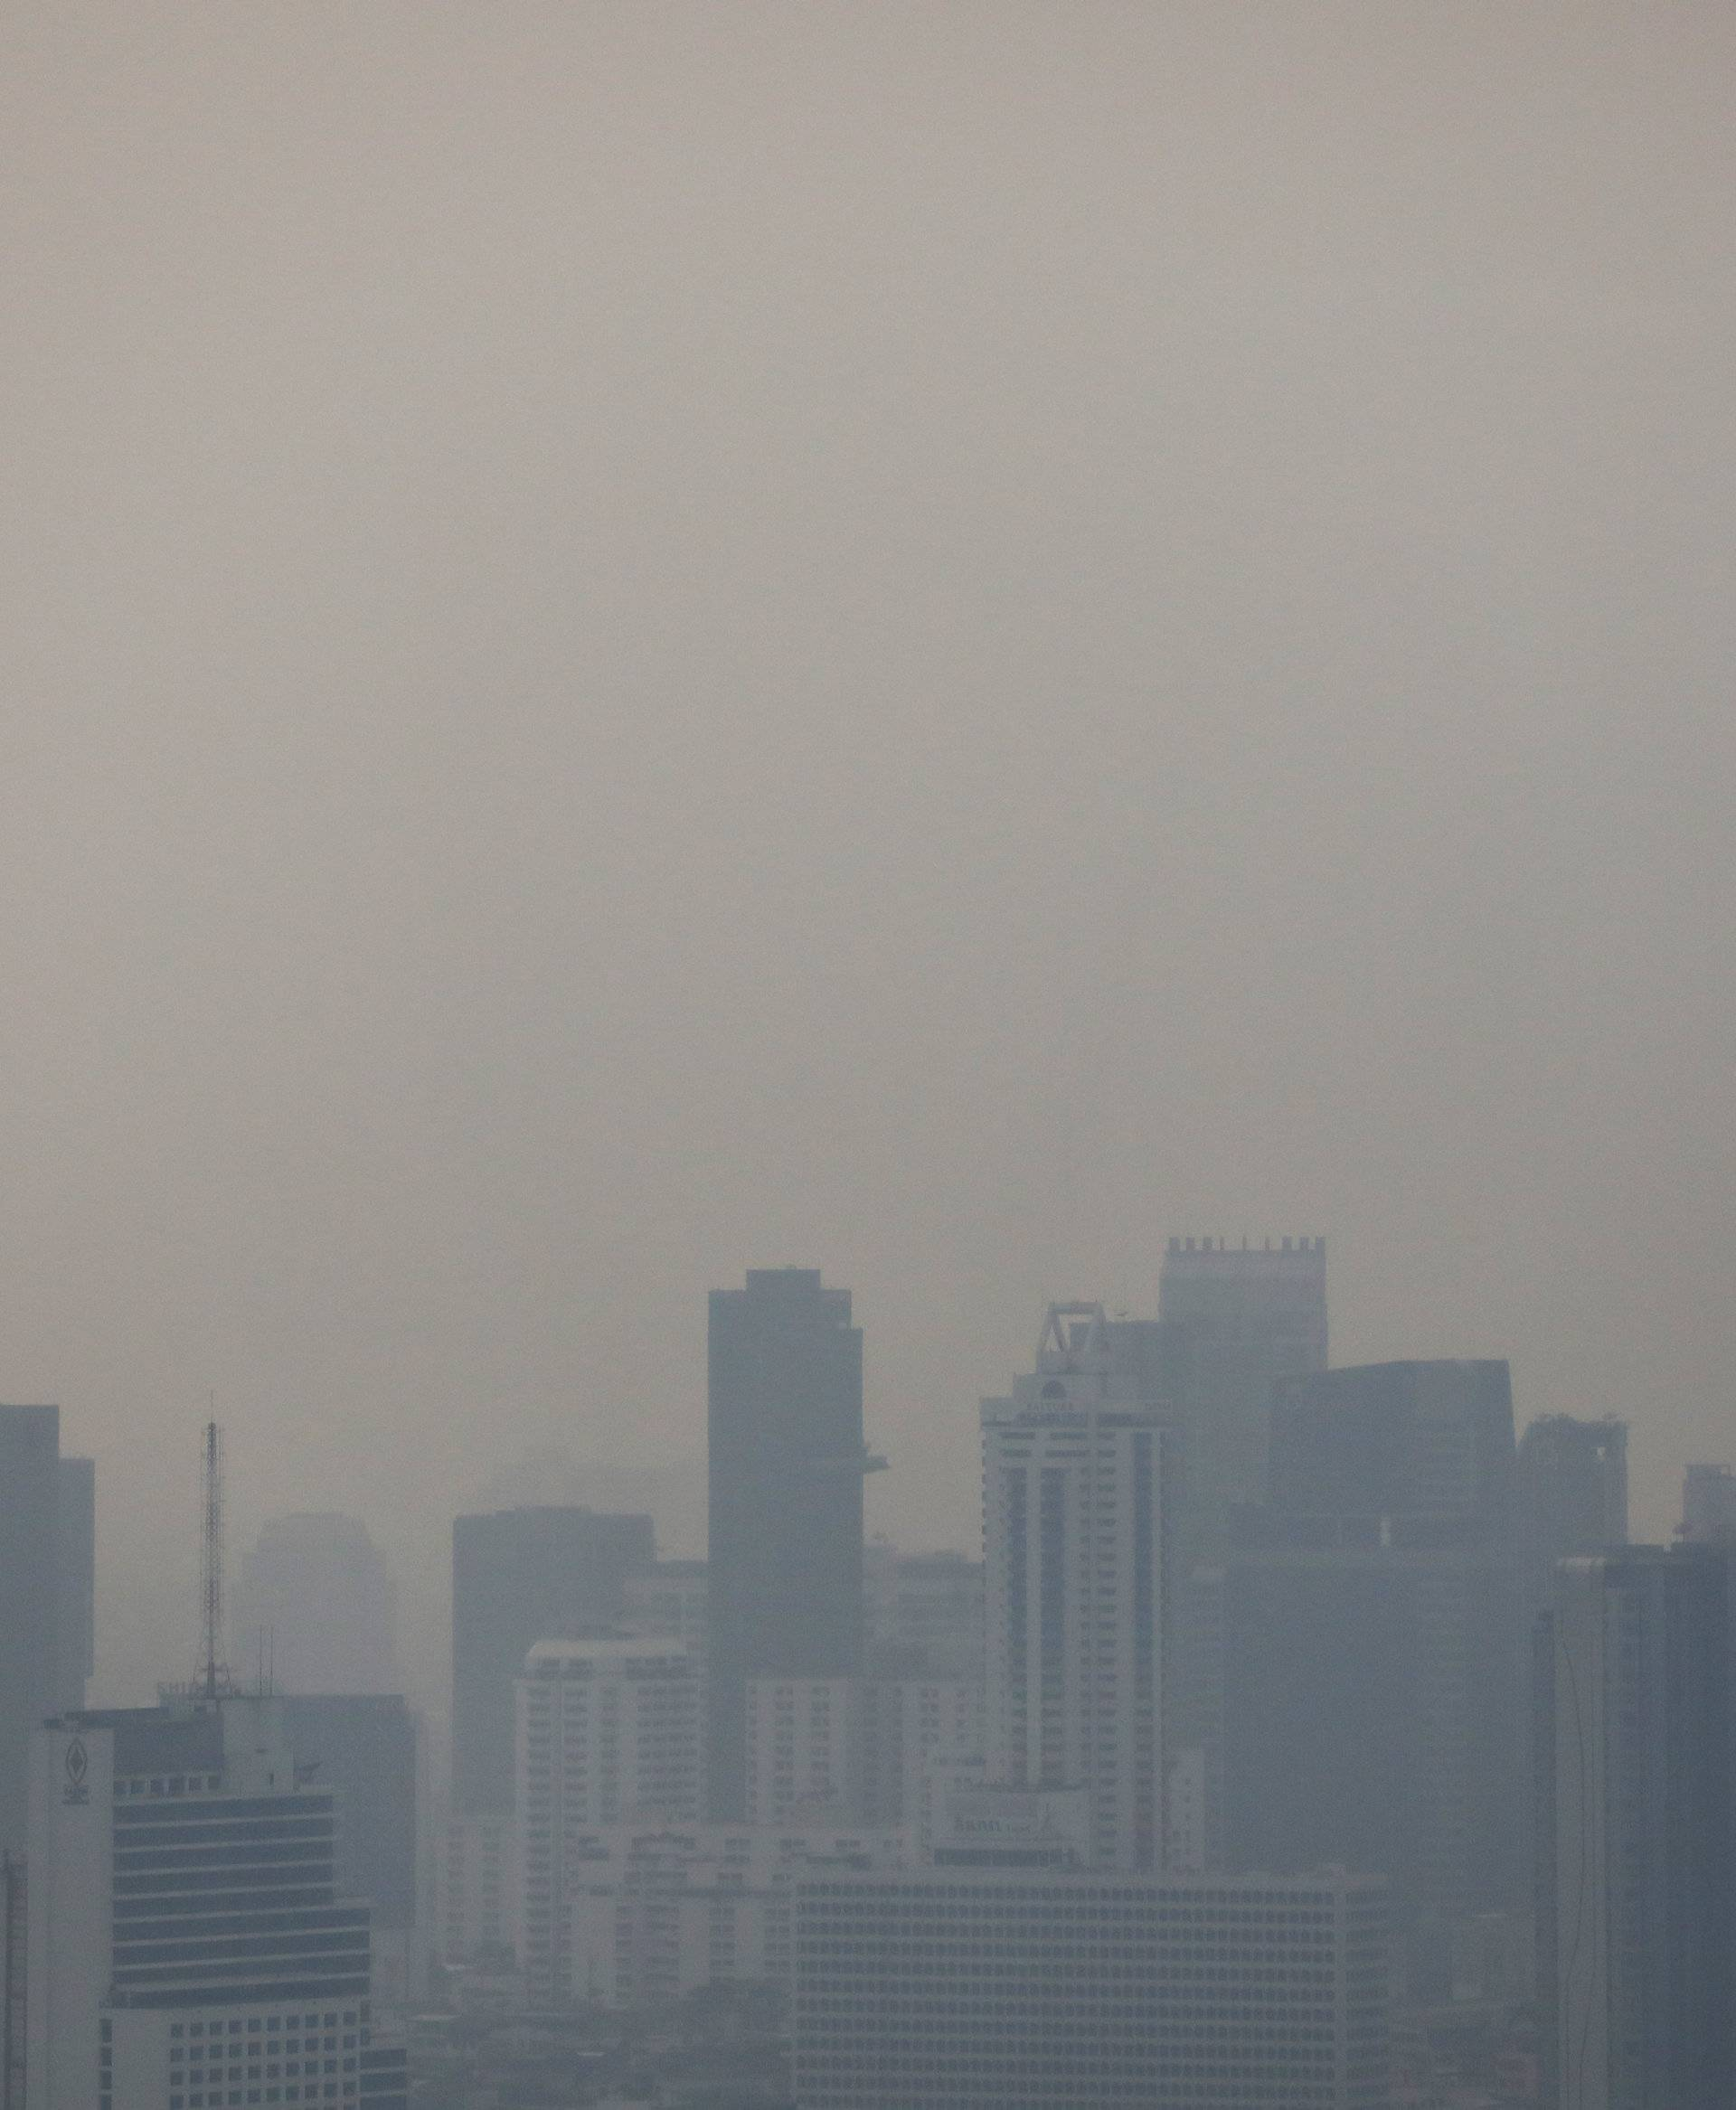 Skyline is seen through polluted air during in Bangkok